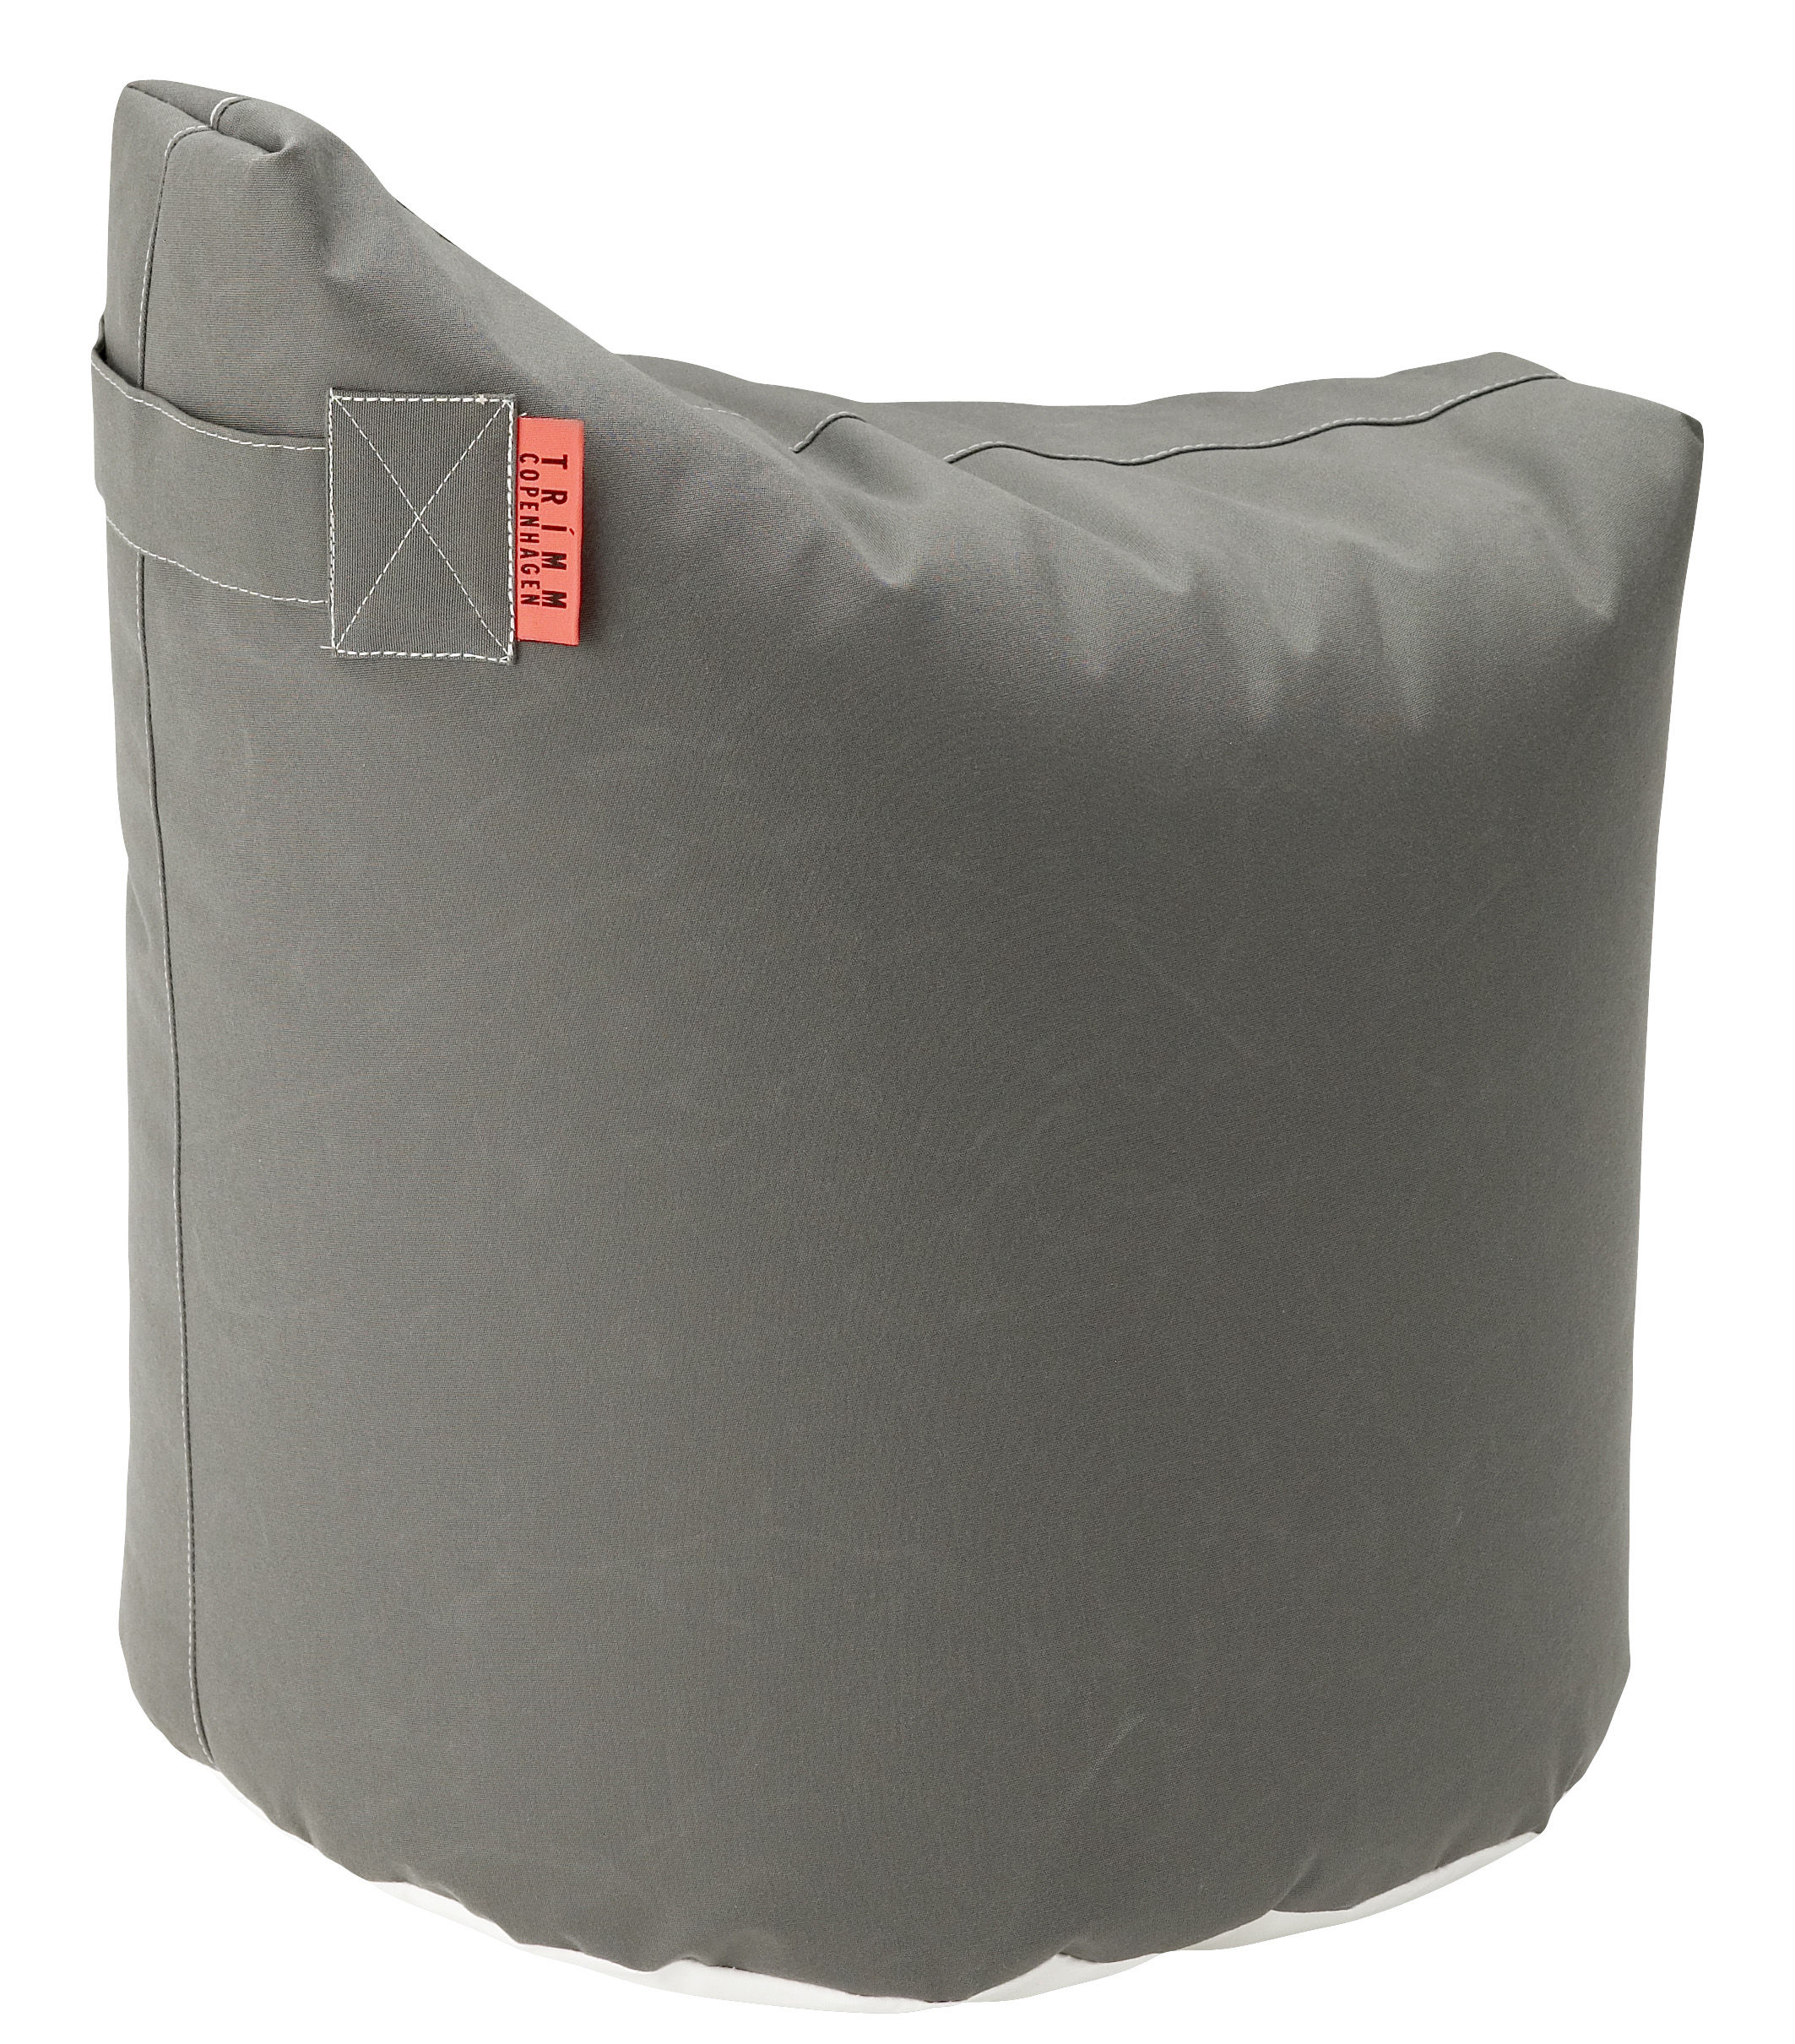 Furniture - Poufs & Floor Cushions - Satellite Small Pouf - H 48 cm by Trimm Copenhagen - Grey -  Microbilles EPS, Sunbrella canvas